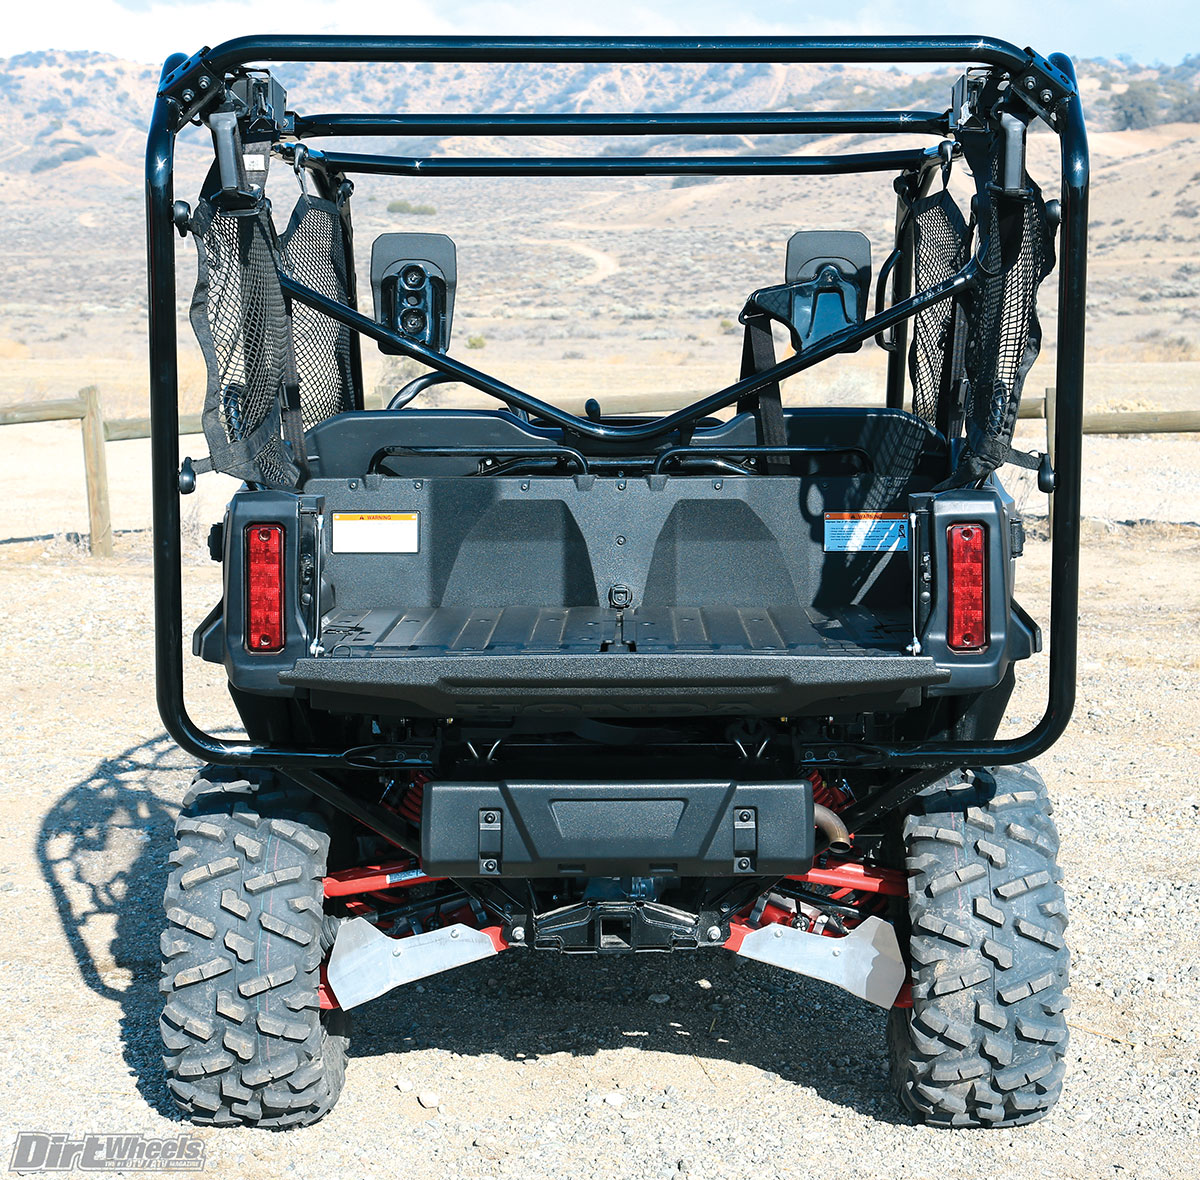 Red paint on the A-arm and shock springs and the aluminum A-arm guards are all specific to the Limited Edition. The cage comes to the back of the machine since two additional seats make up the bed floor.